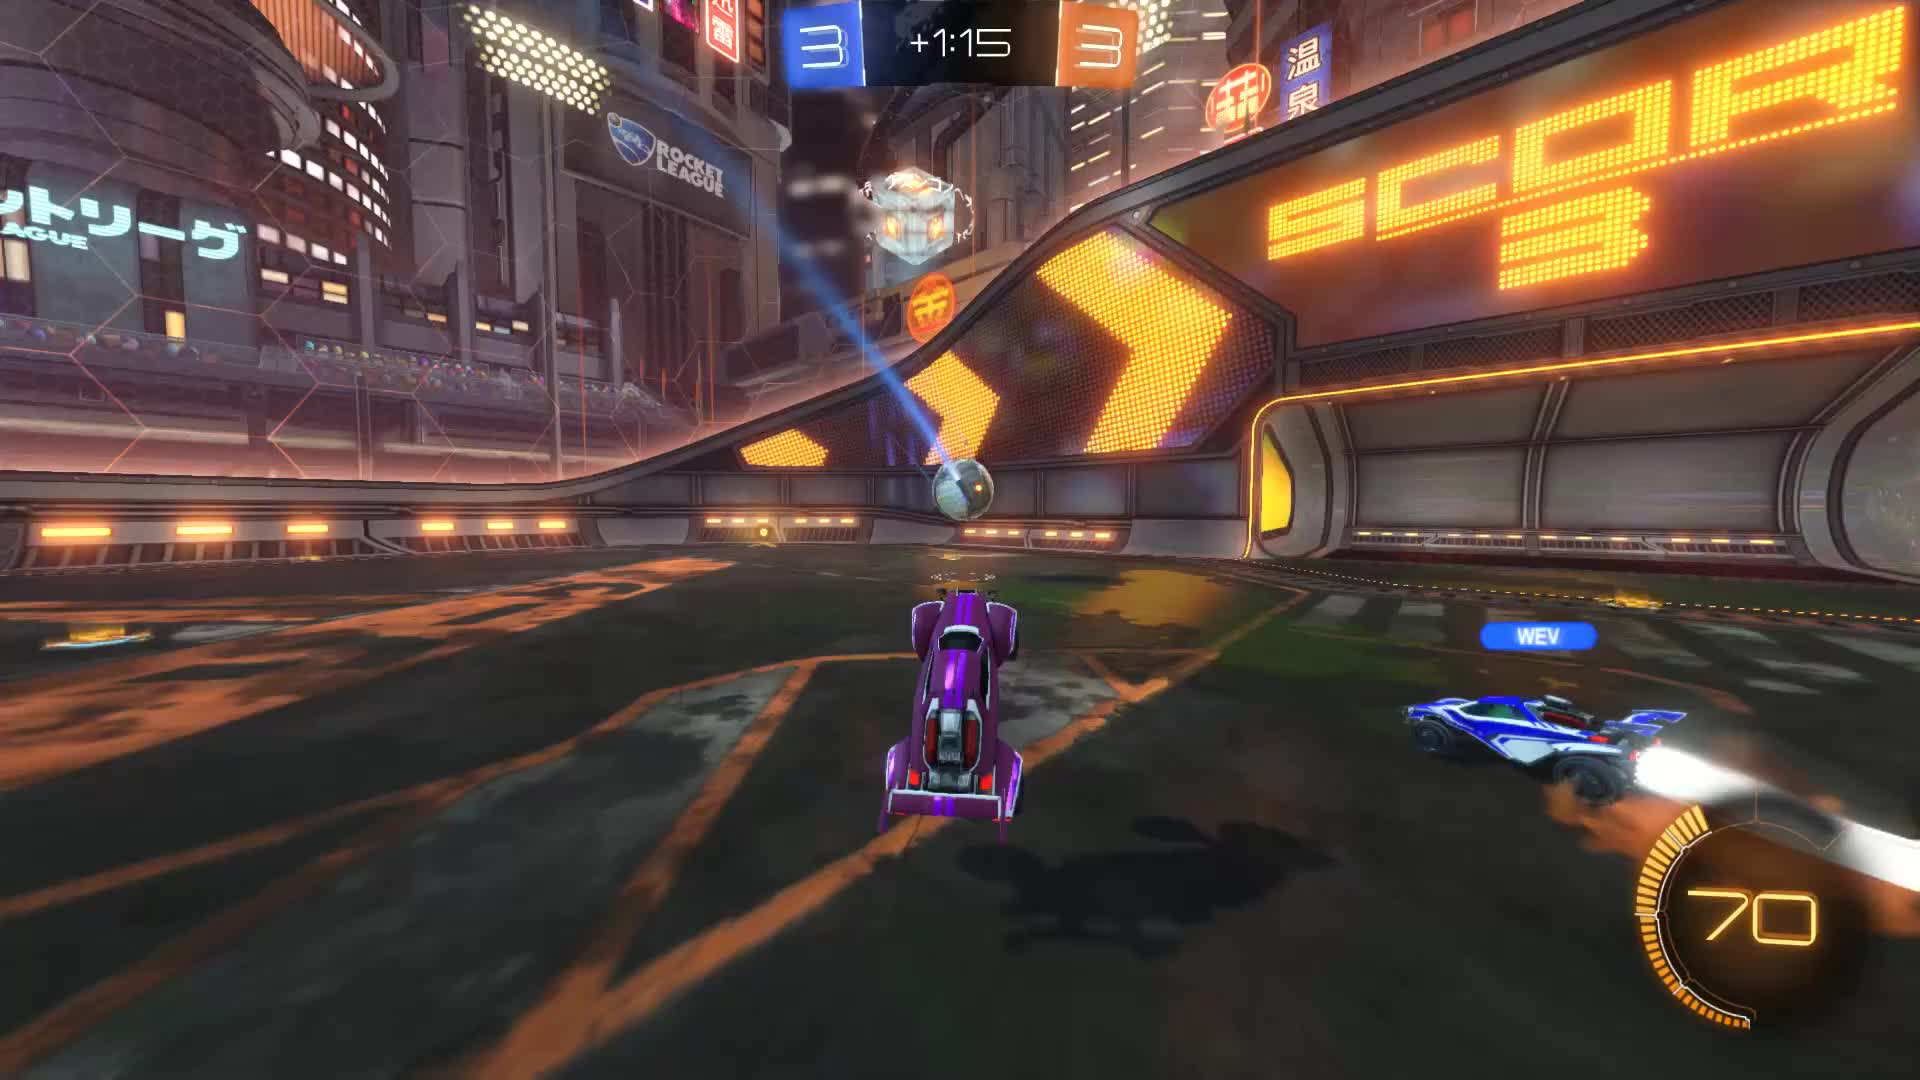 Gif Your Game, GifYourGame, Goal, Rocket League, RocketLeague, T., ⏱️ Goal 7: T. GIFs